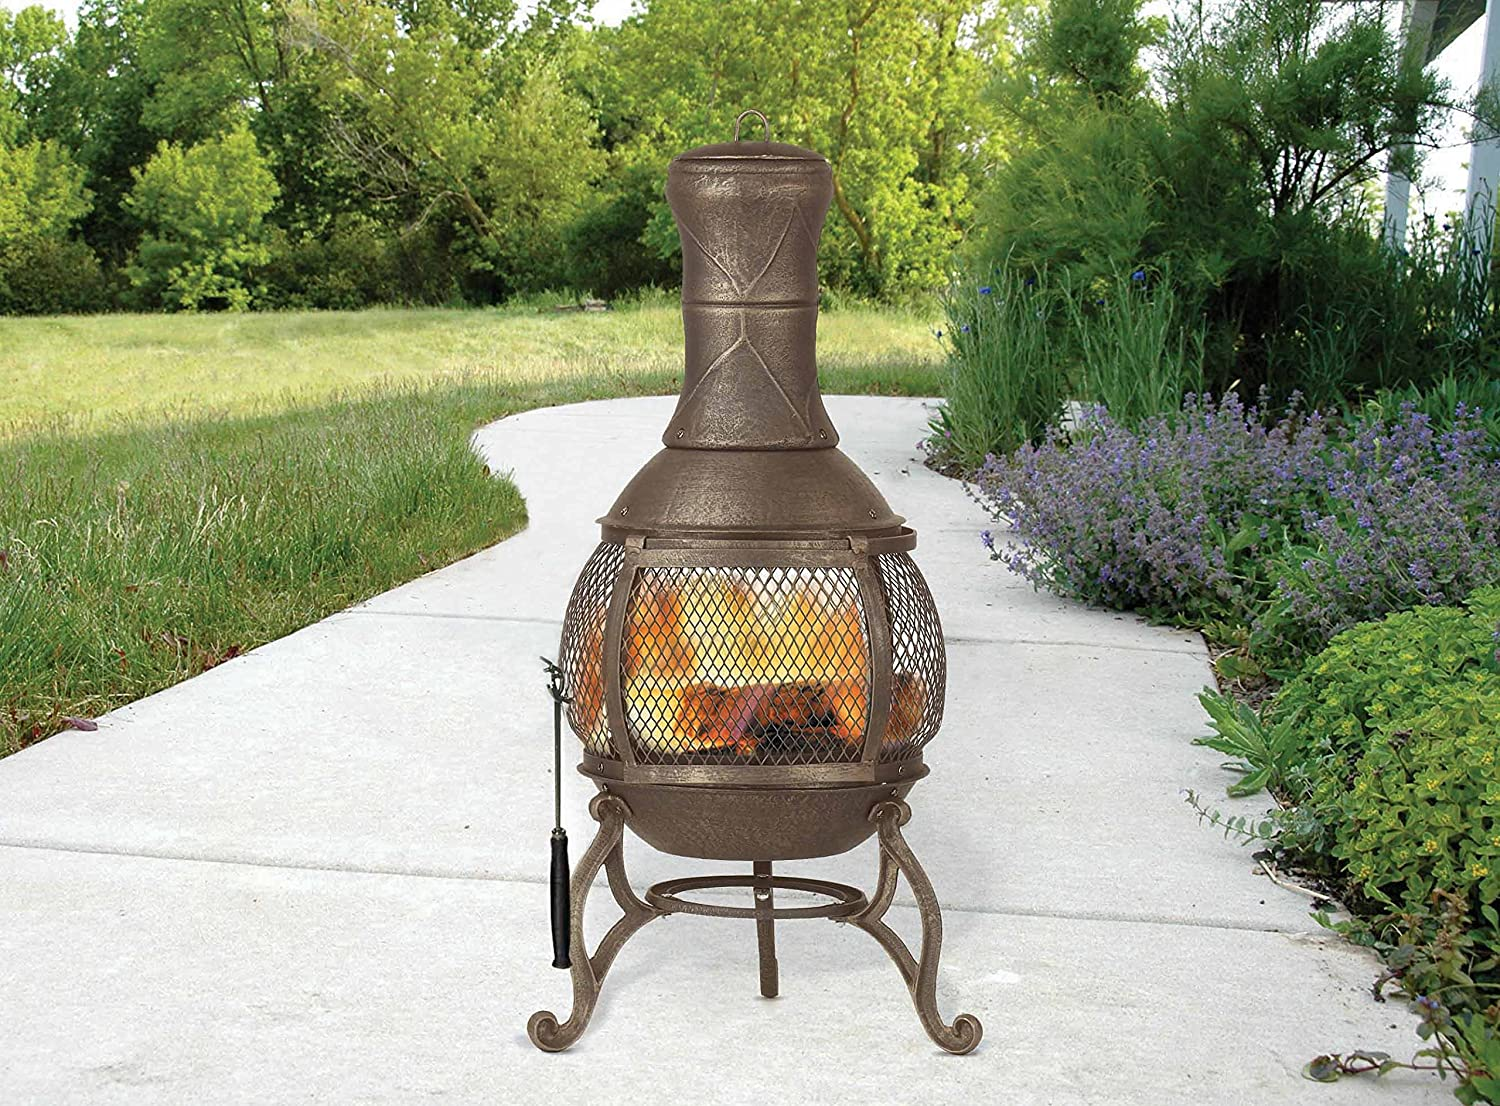 amazon com deckmate corona outdoor chimenea fireplace model